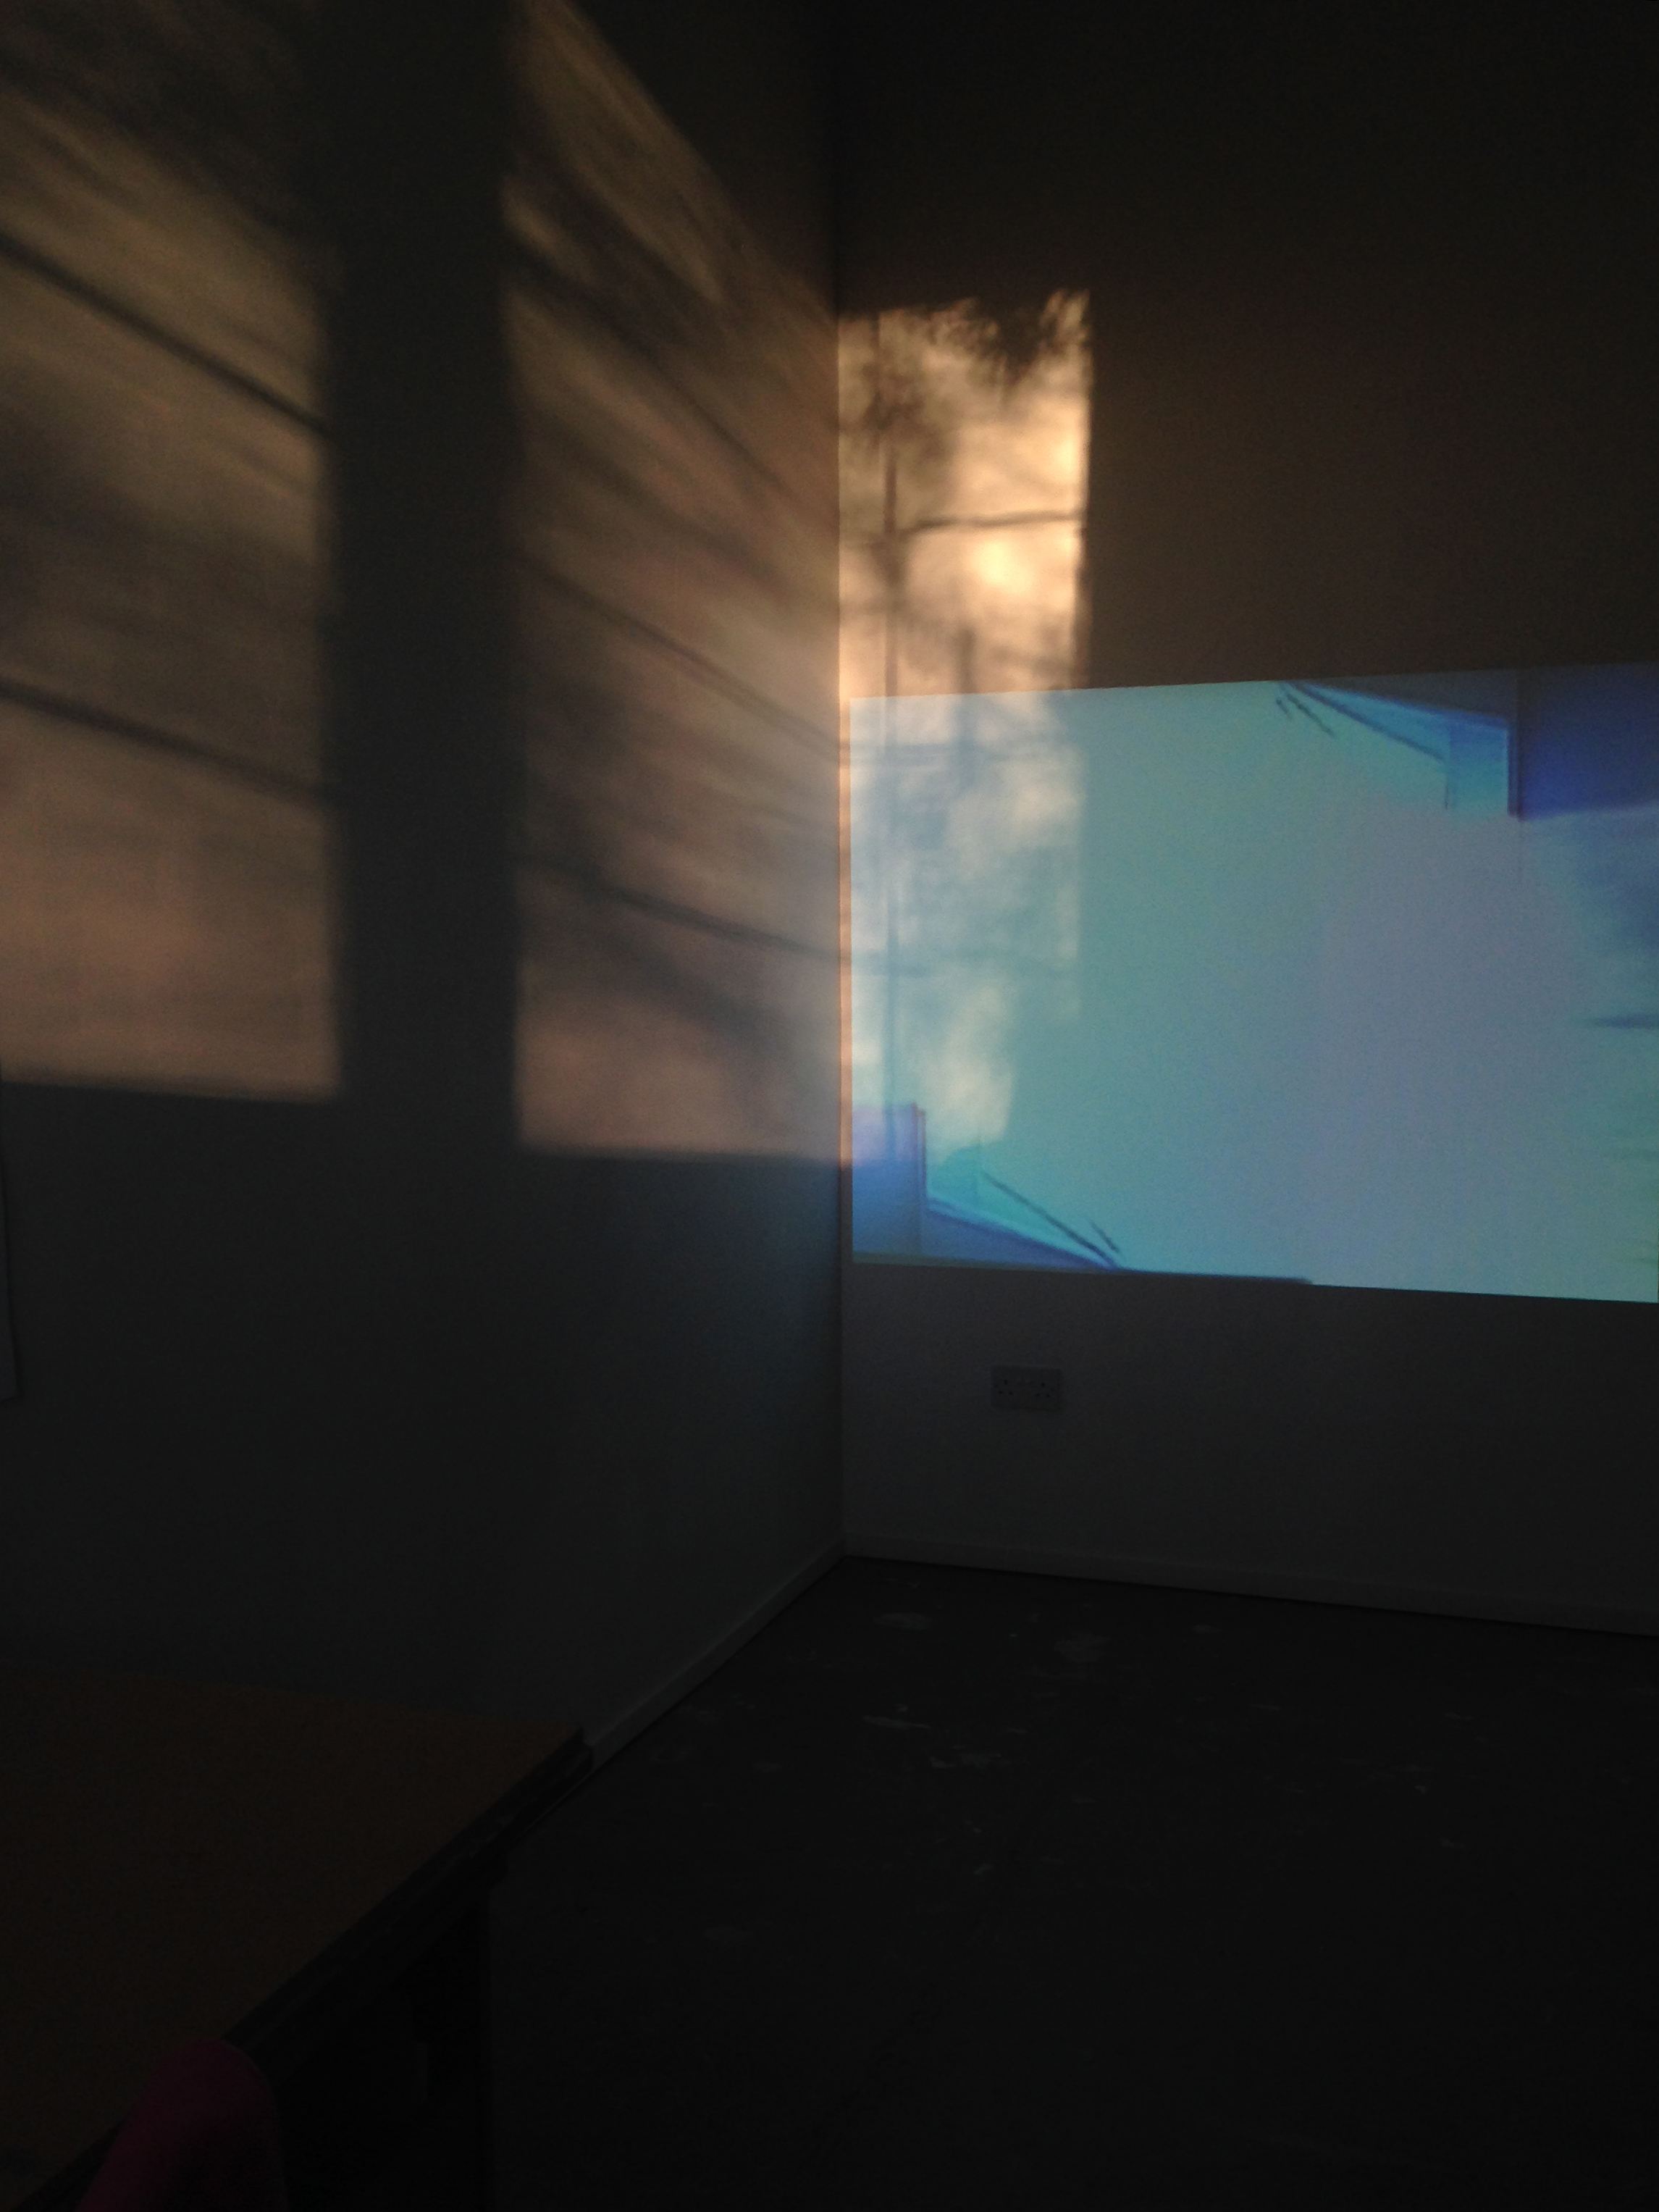 A projection on the wall is overlapped by the glow from the sun is projecting the shadow of the window frame onto the wall.